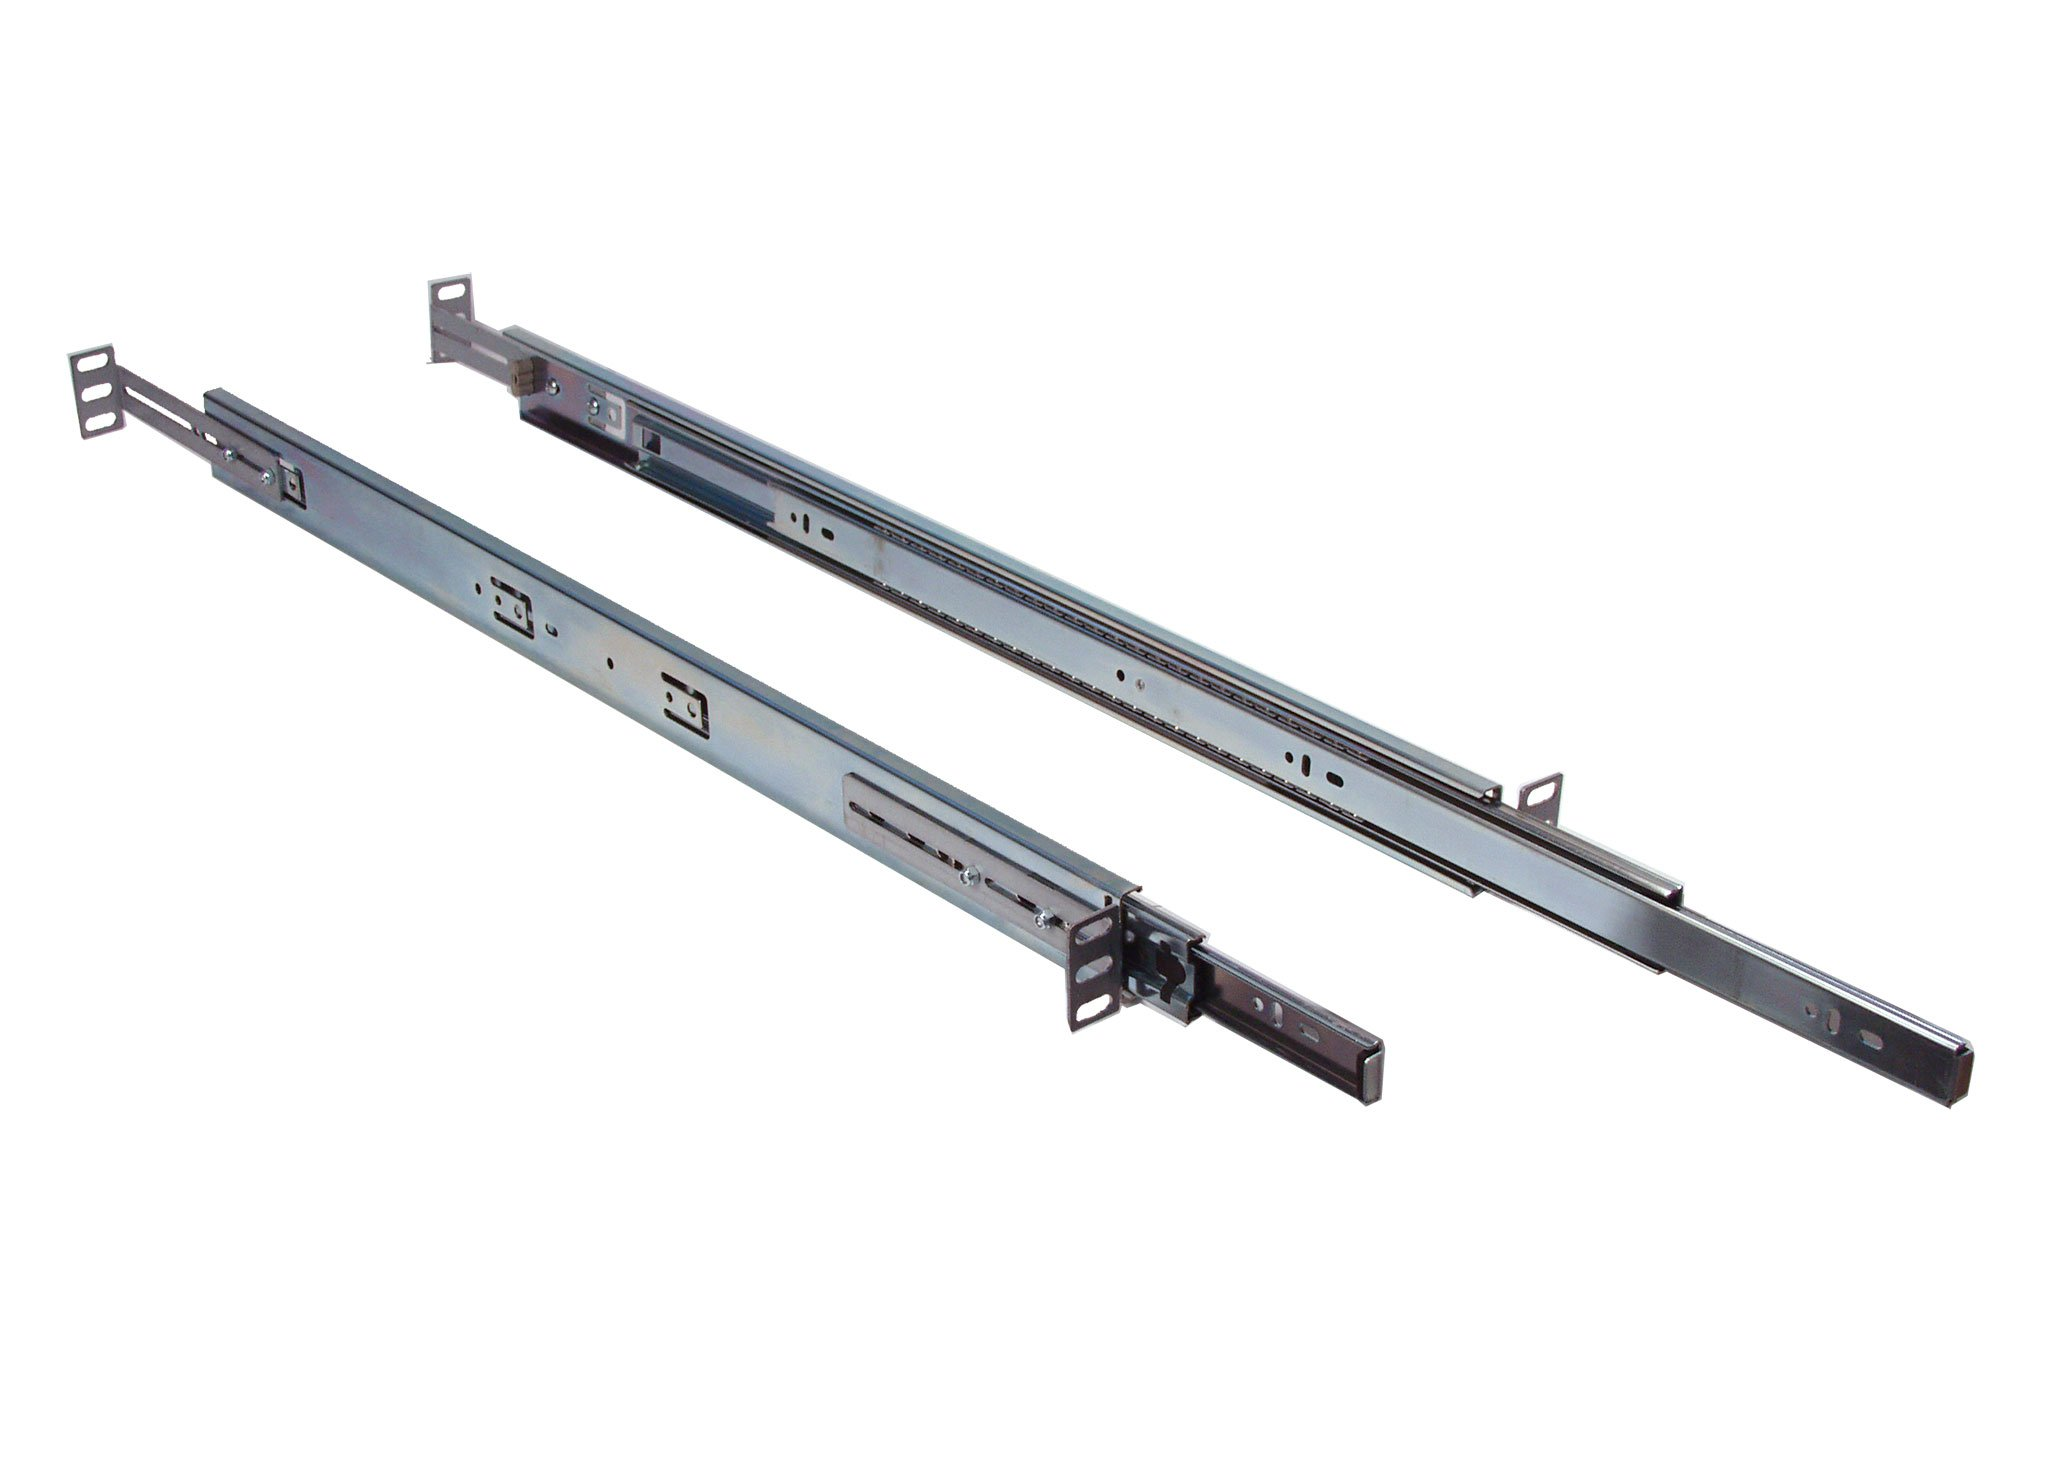 1U Universal Ball Bearing 26'' Sliding Rail comes with front and rear adjustable depth rackmount brackets for standard 19'' or 23'' EIA310 server rack